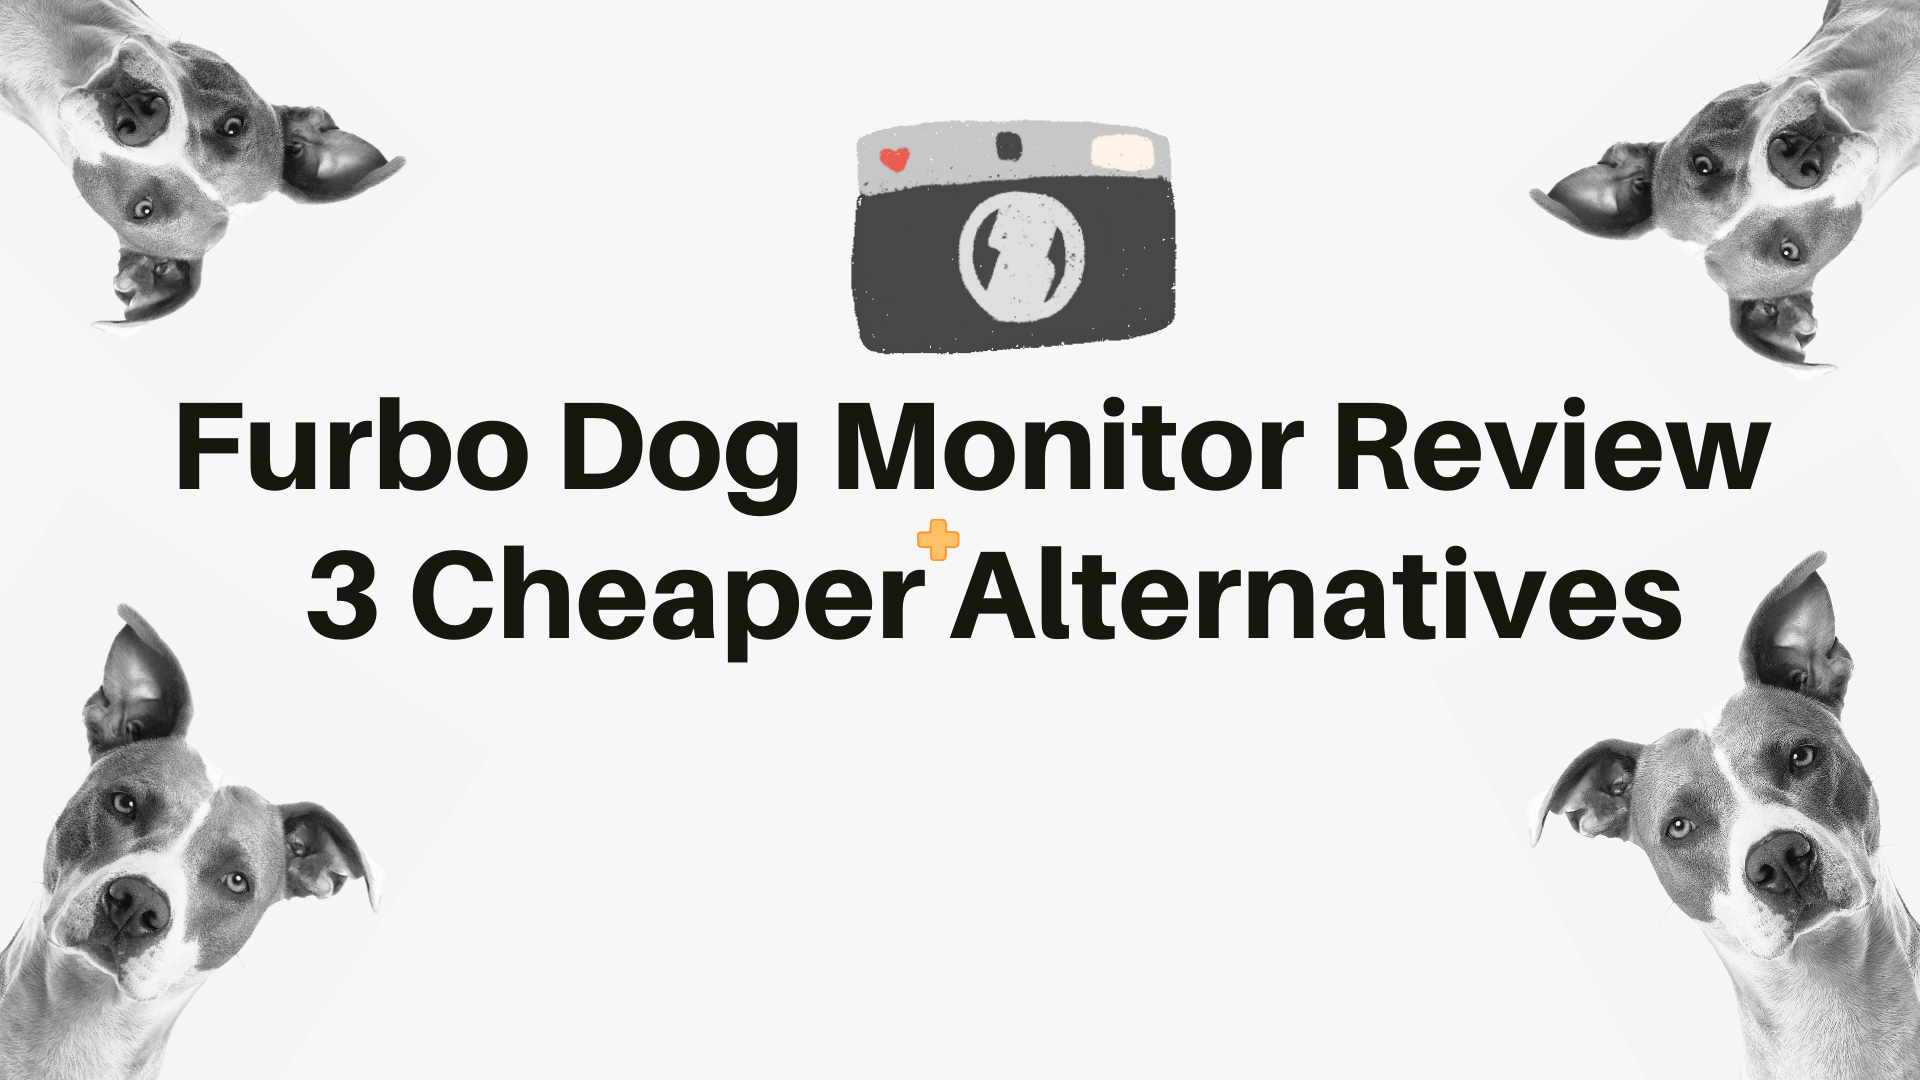 Furbo Dog Monitor Review + 3 Cheaper Alternatives